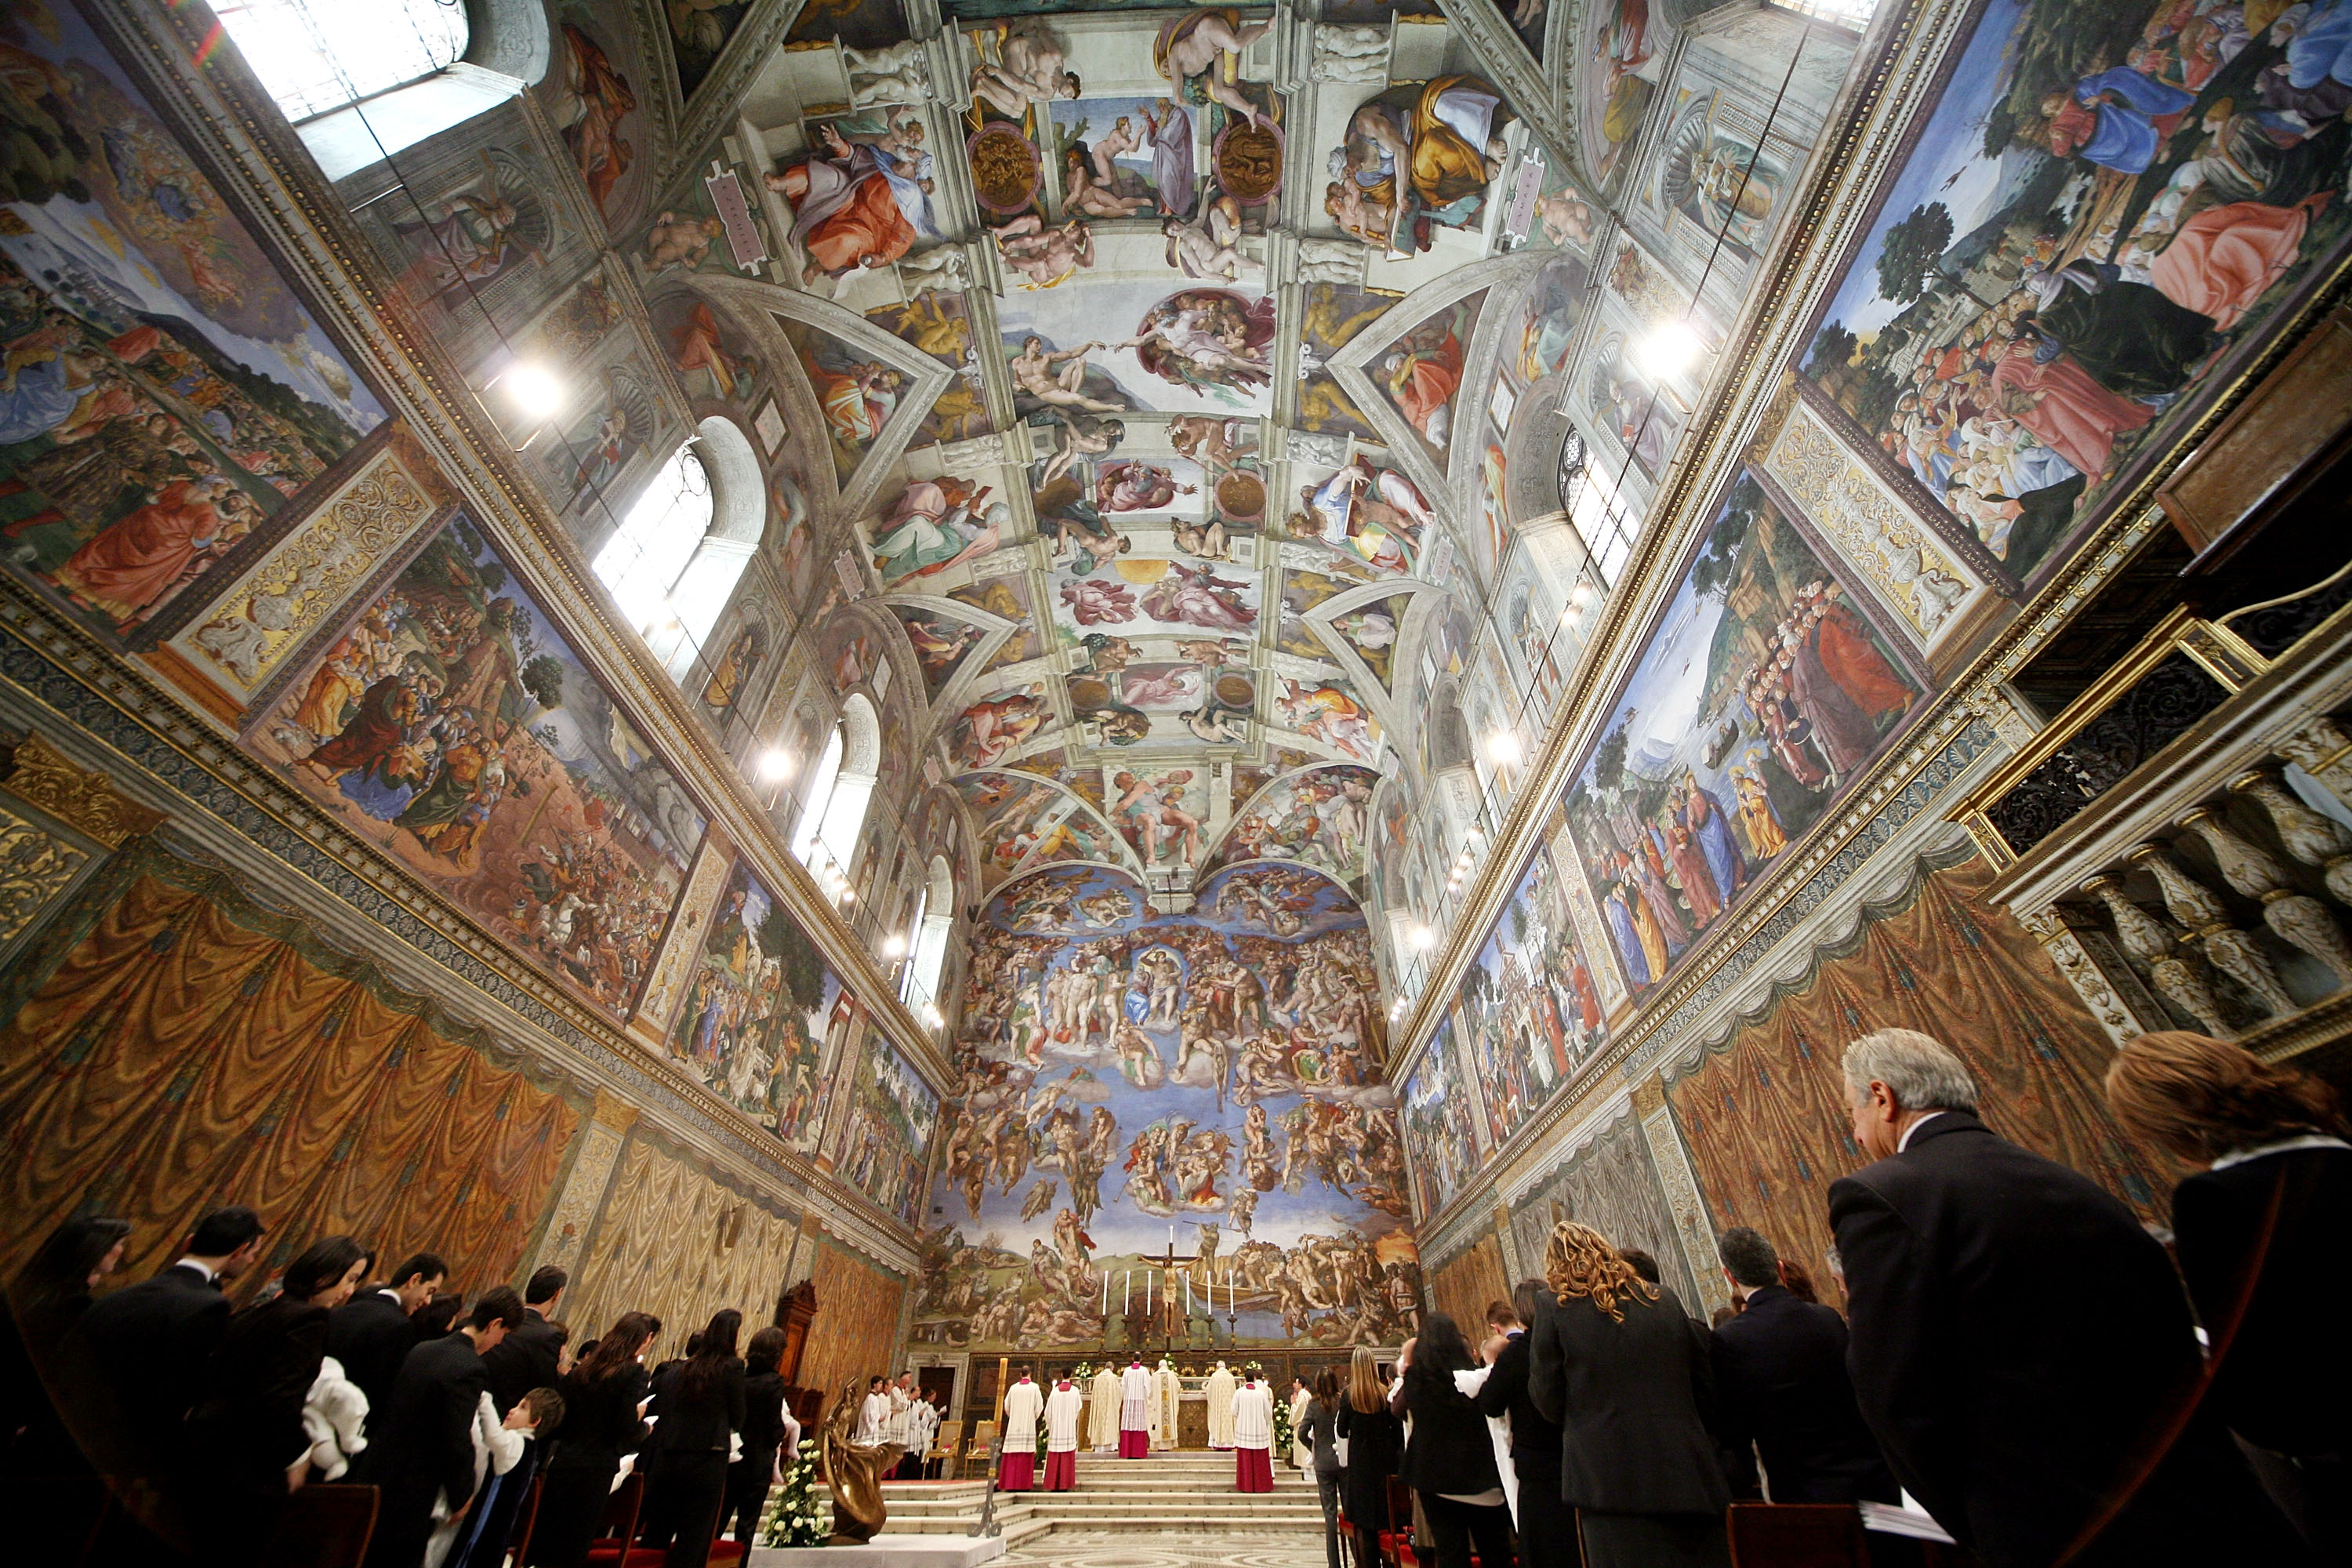 A general view as Pope Benedict XVI celebrates baptisms in Michelangelo's Sistine Chapel in Vatican City on Jan. 13, 2008.